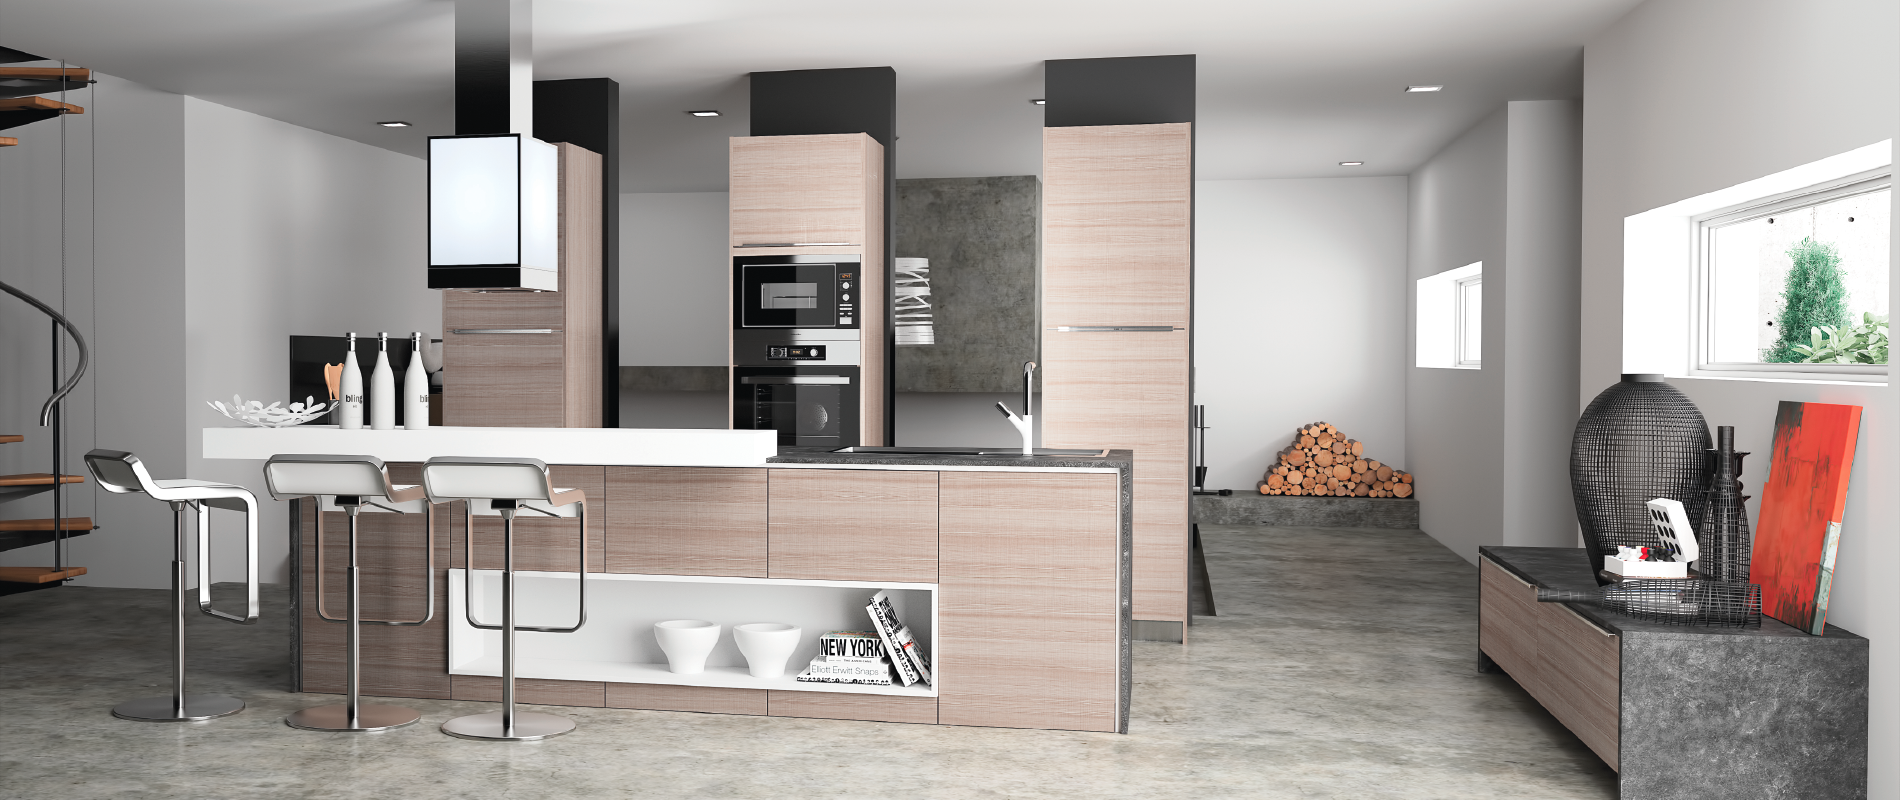 cuisine contemporaine de qualit monza 2 haut de gamme sur mesure. Black Bedroom Furniture Sets. Home Design Ideas